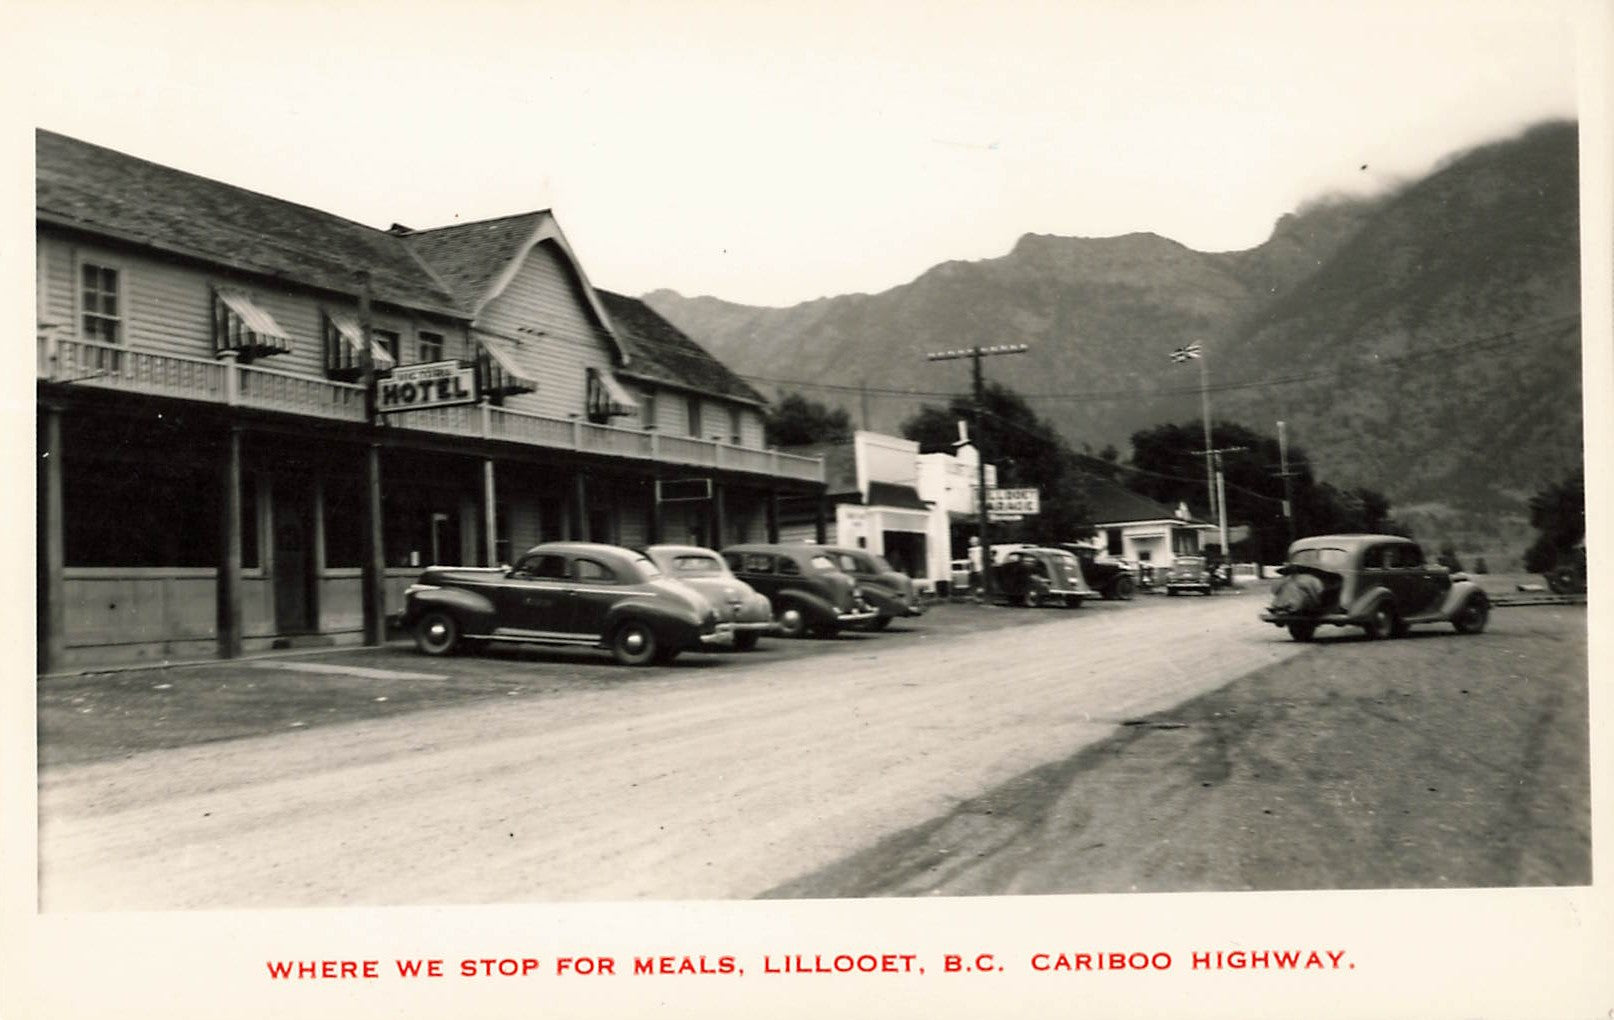 Lillooet, BC. Hotel With Automobiles Out Front. Cariboo Series. Canada RPPC Postcard